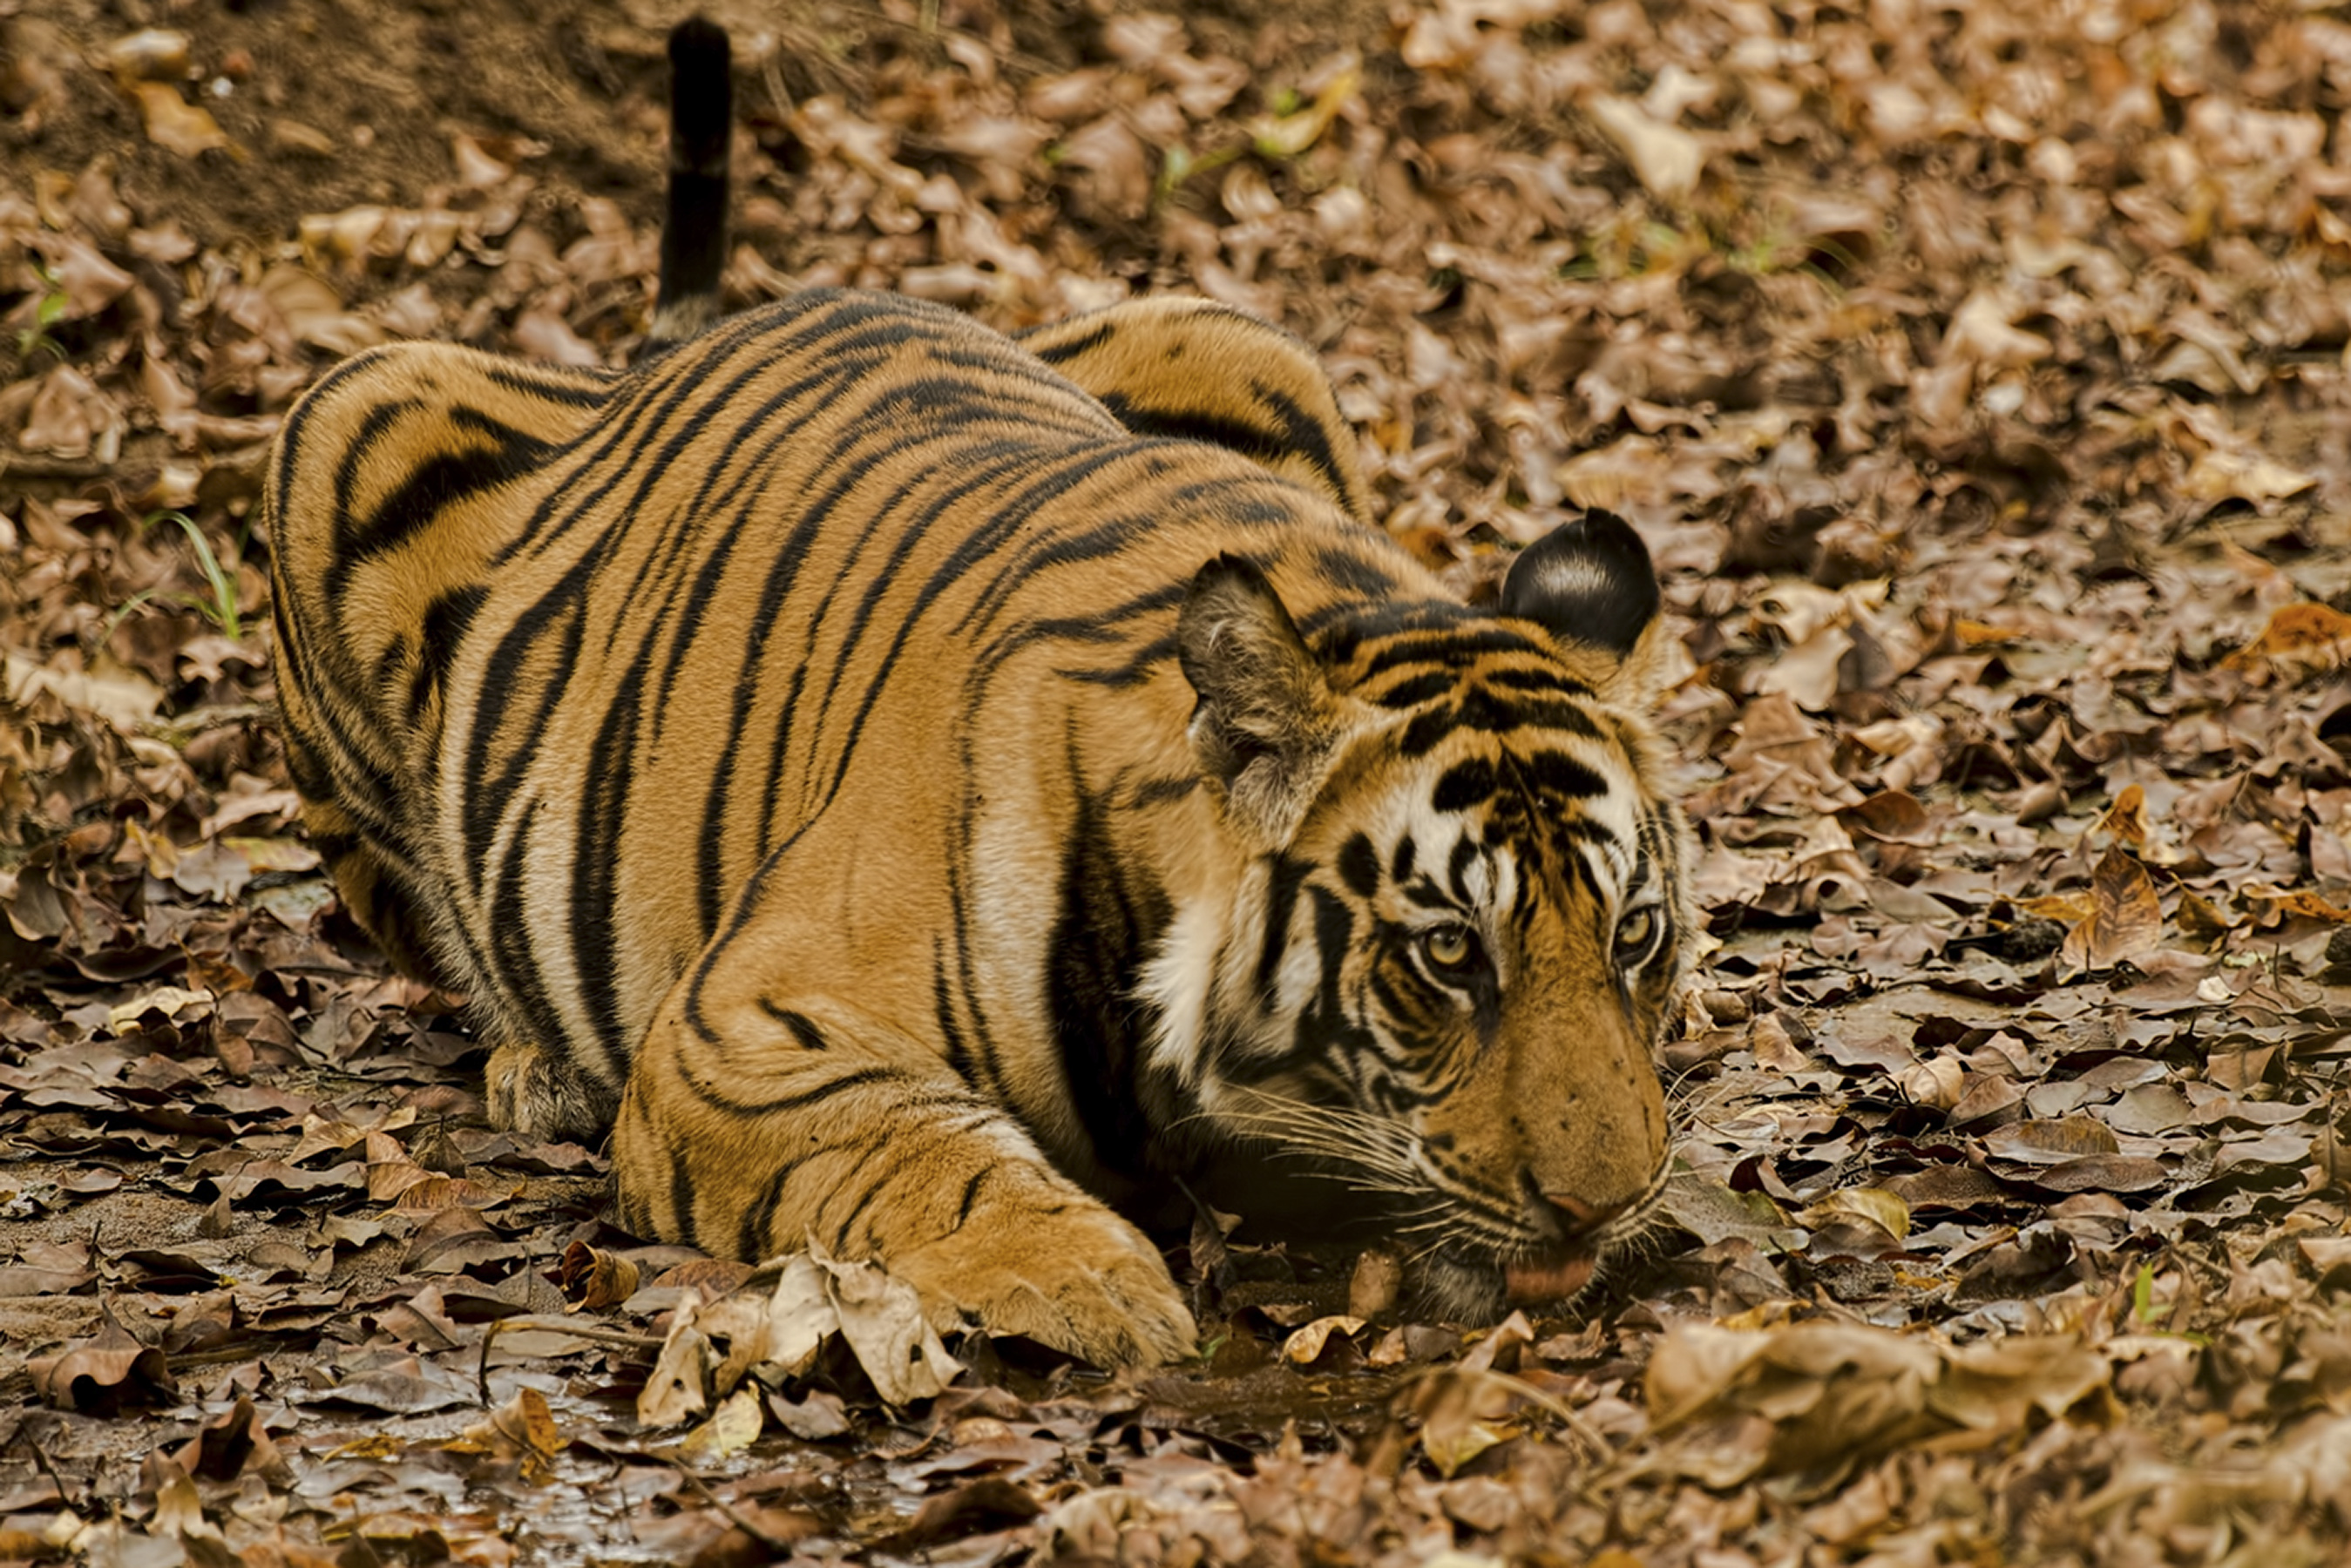 Tiger laying on ground